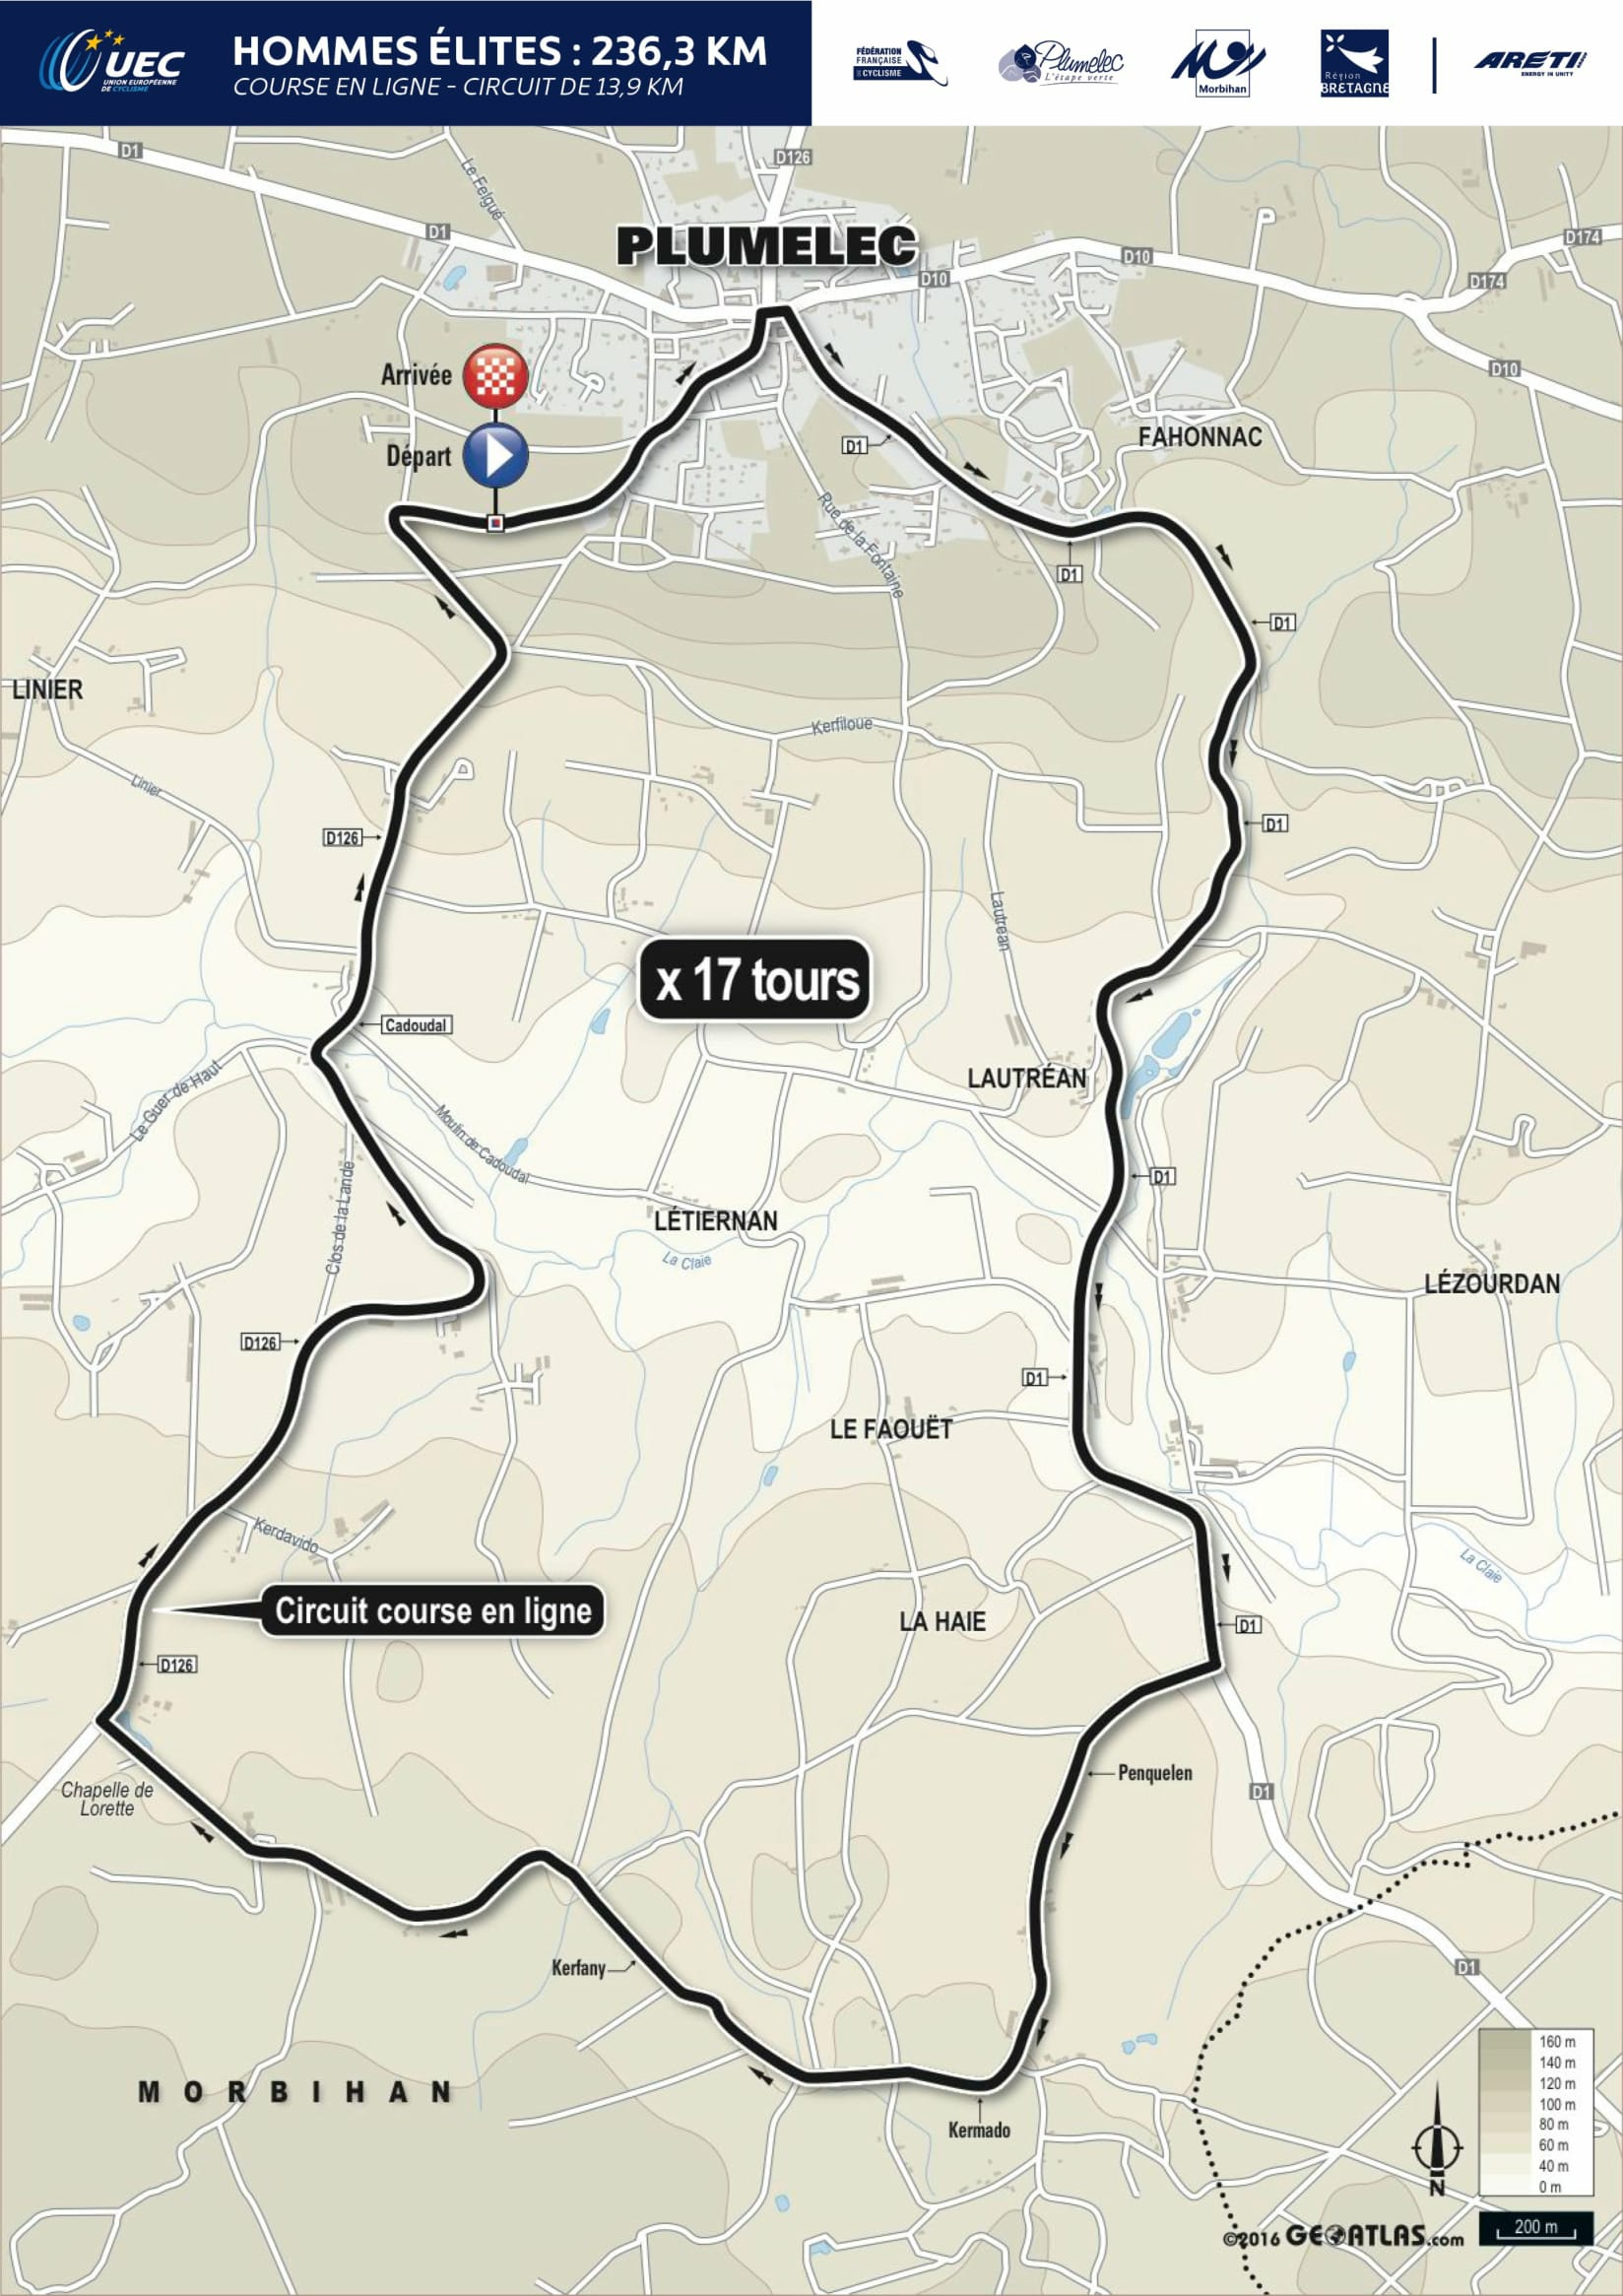 10_EuroRoad16_Plan_Course_Route_Hommes_Elites_RR_Men_Elite-1